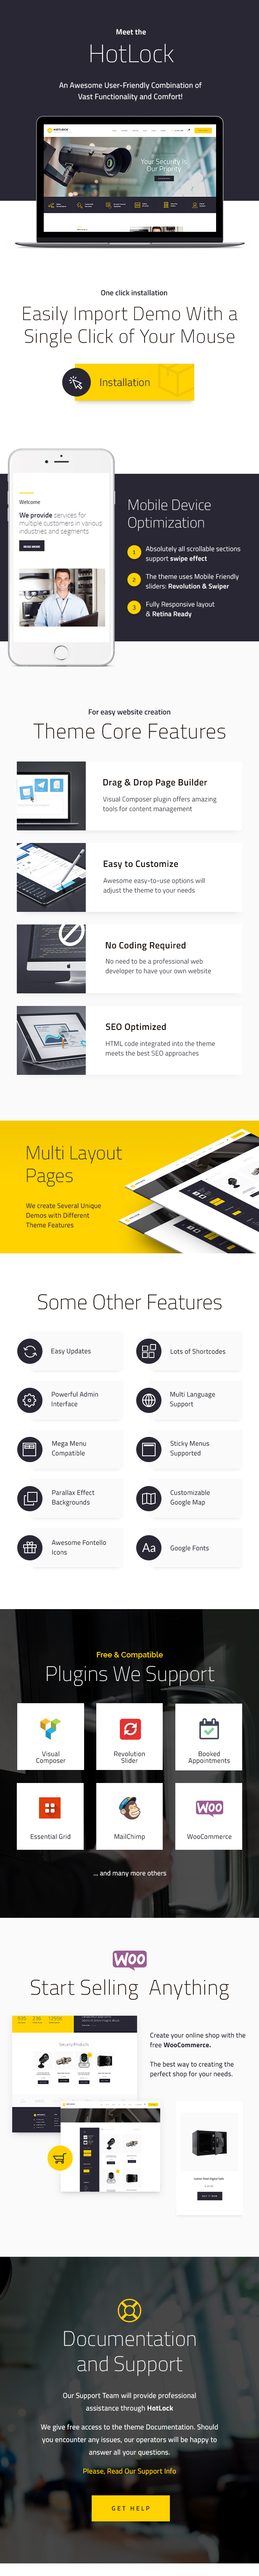 HotLock | Locksmith & Security Systems WordPress Theme - 2